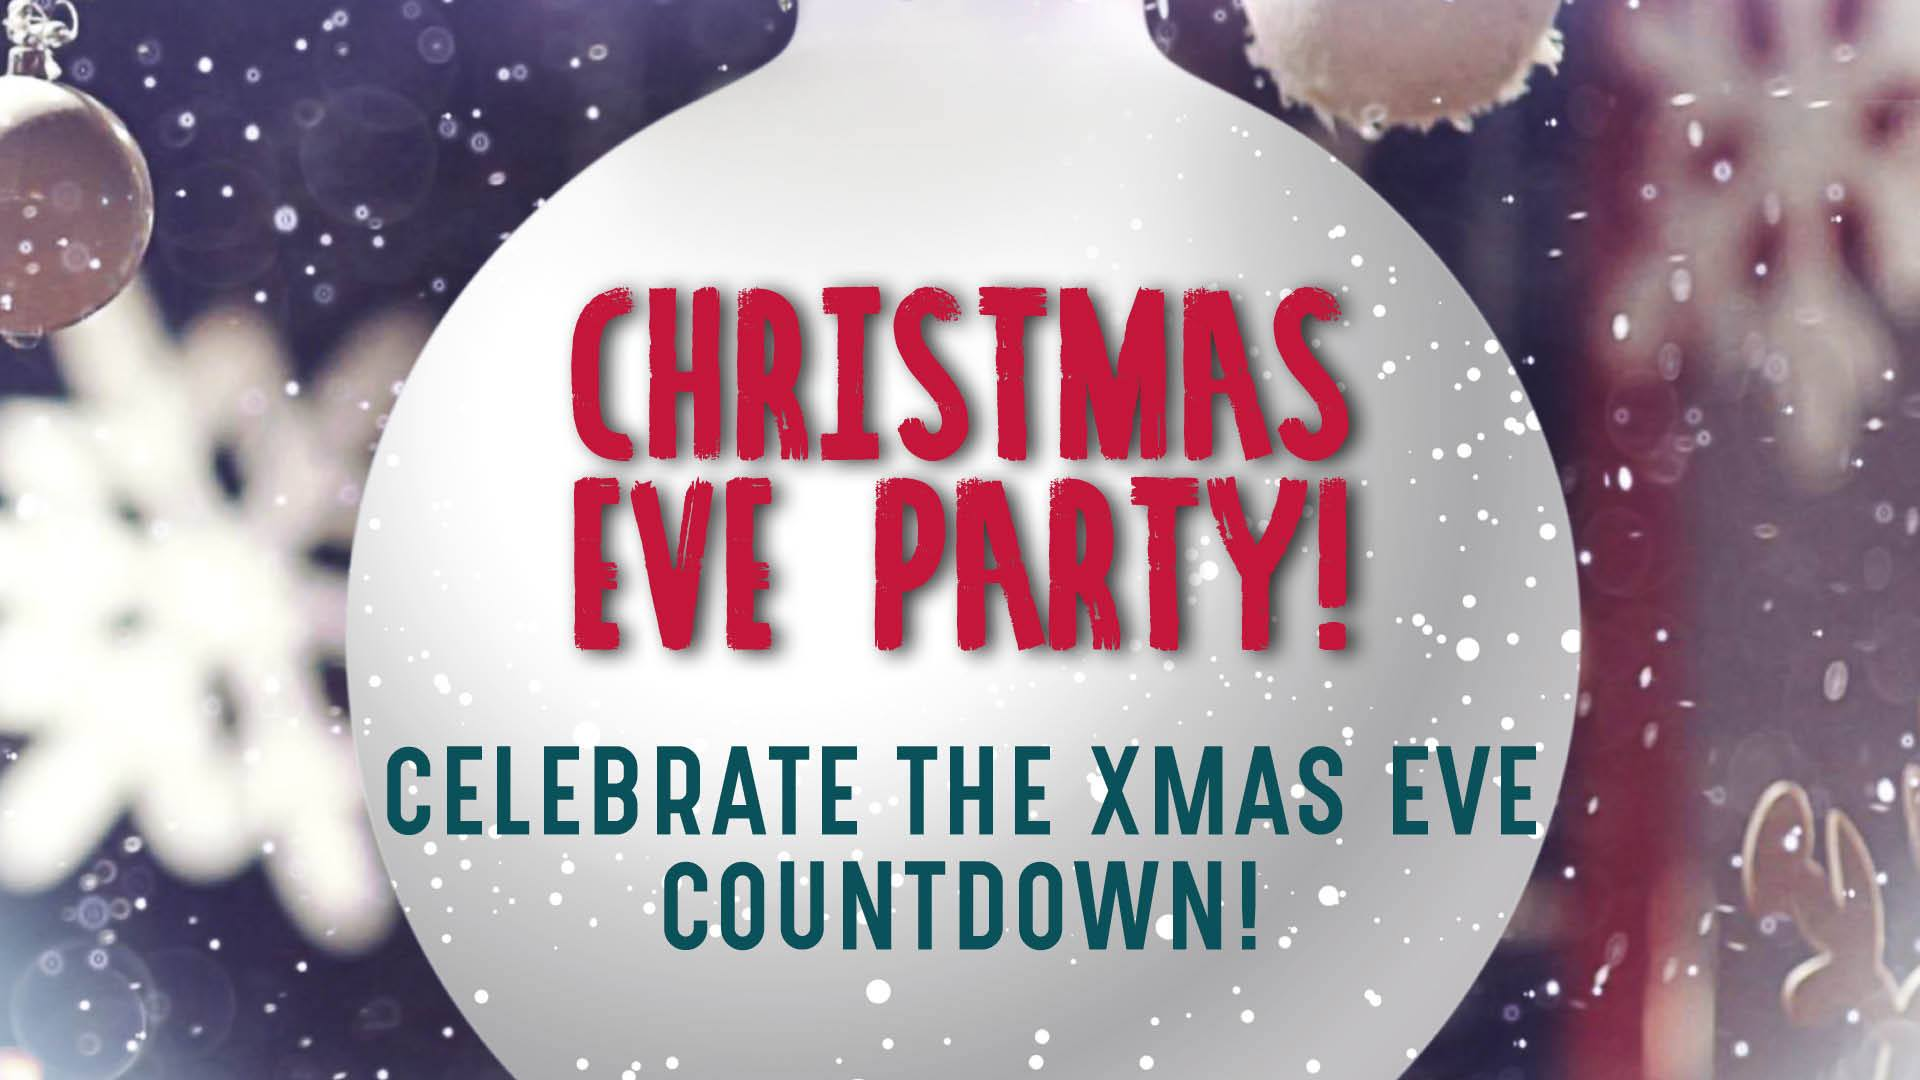 Christmas Eve Party at Yates